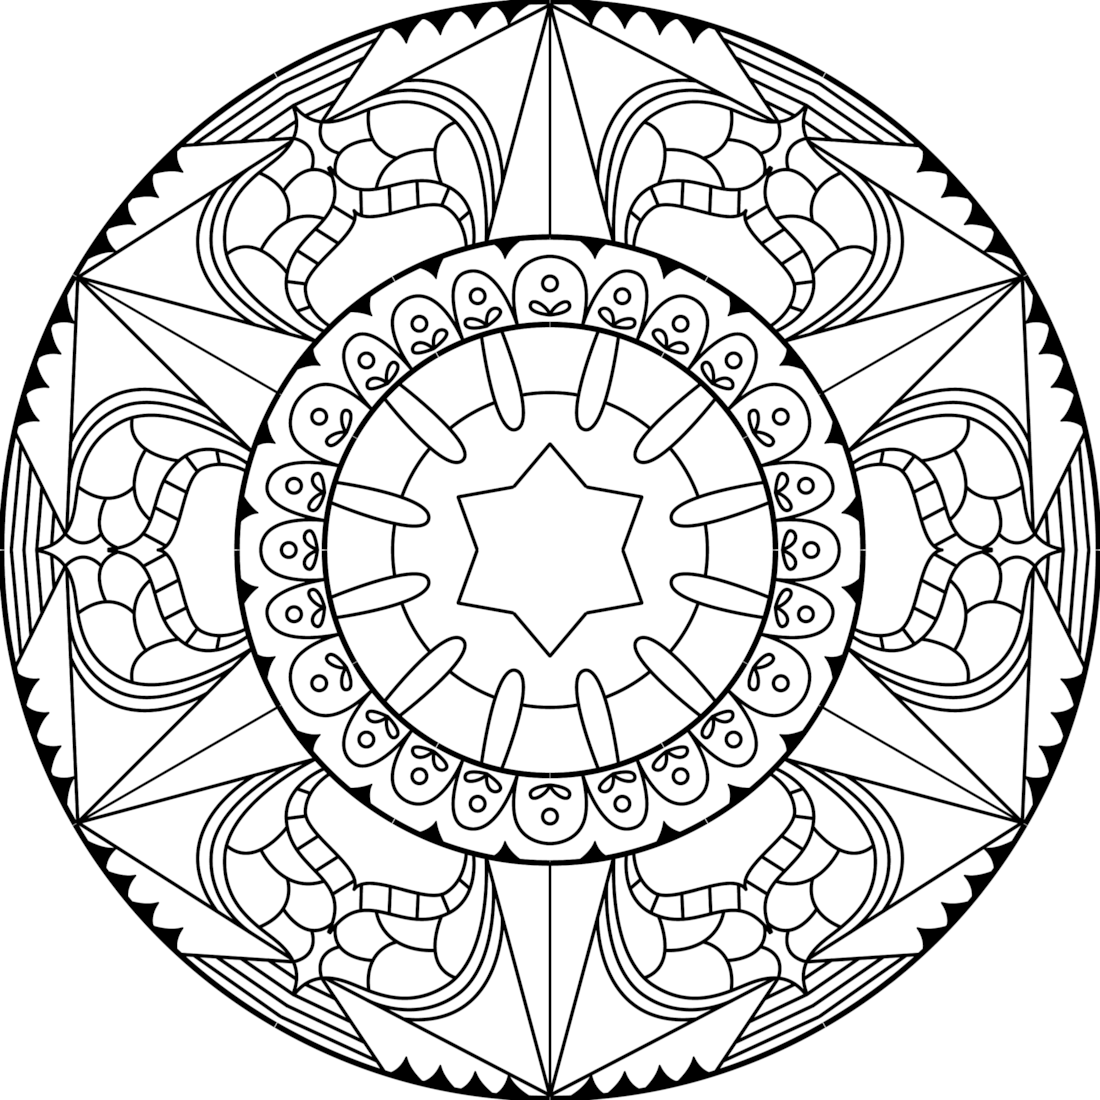 medal coloring page gold medal coloring page at getcoloringscom free page coloring medal